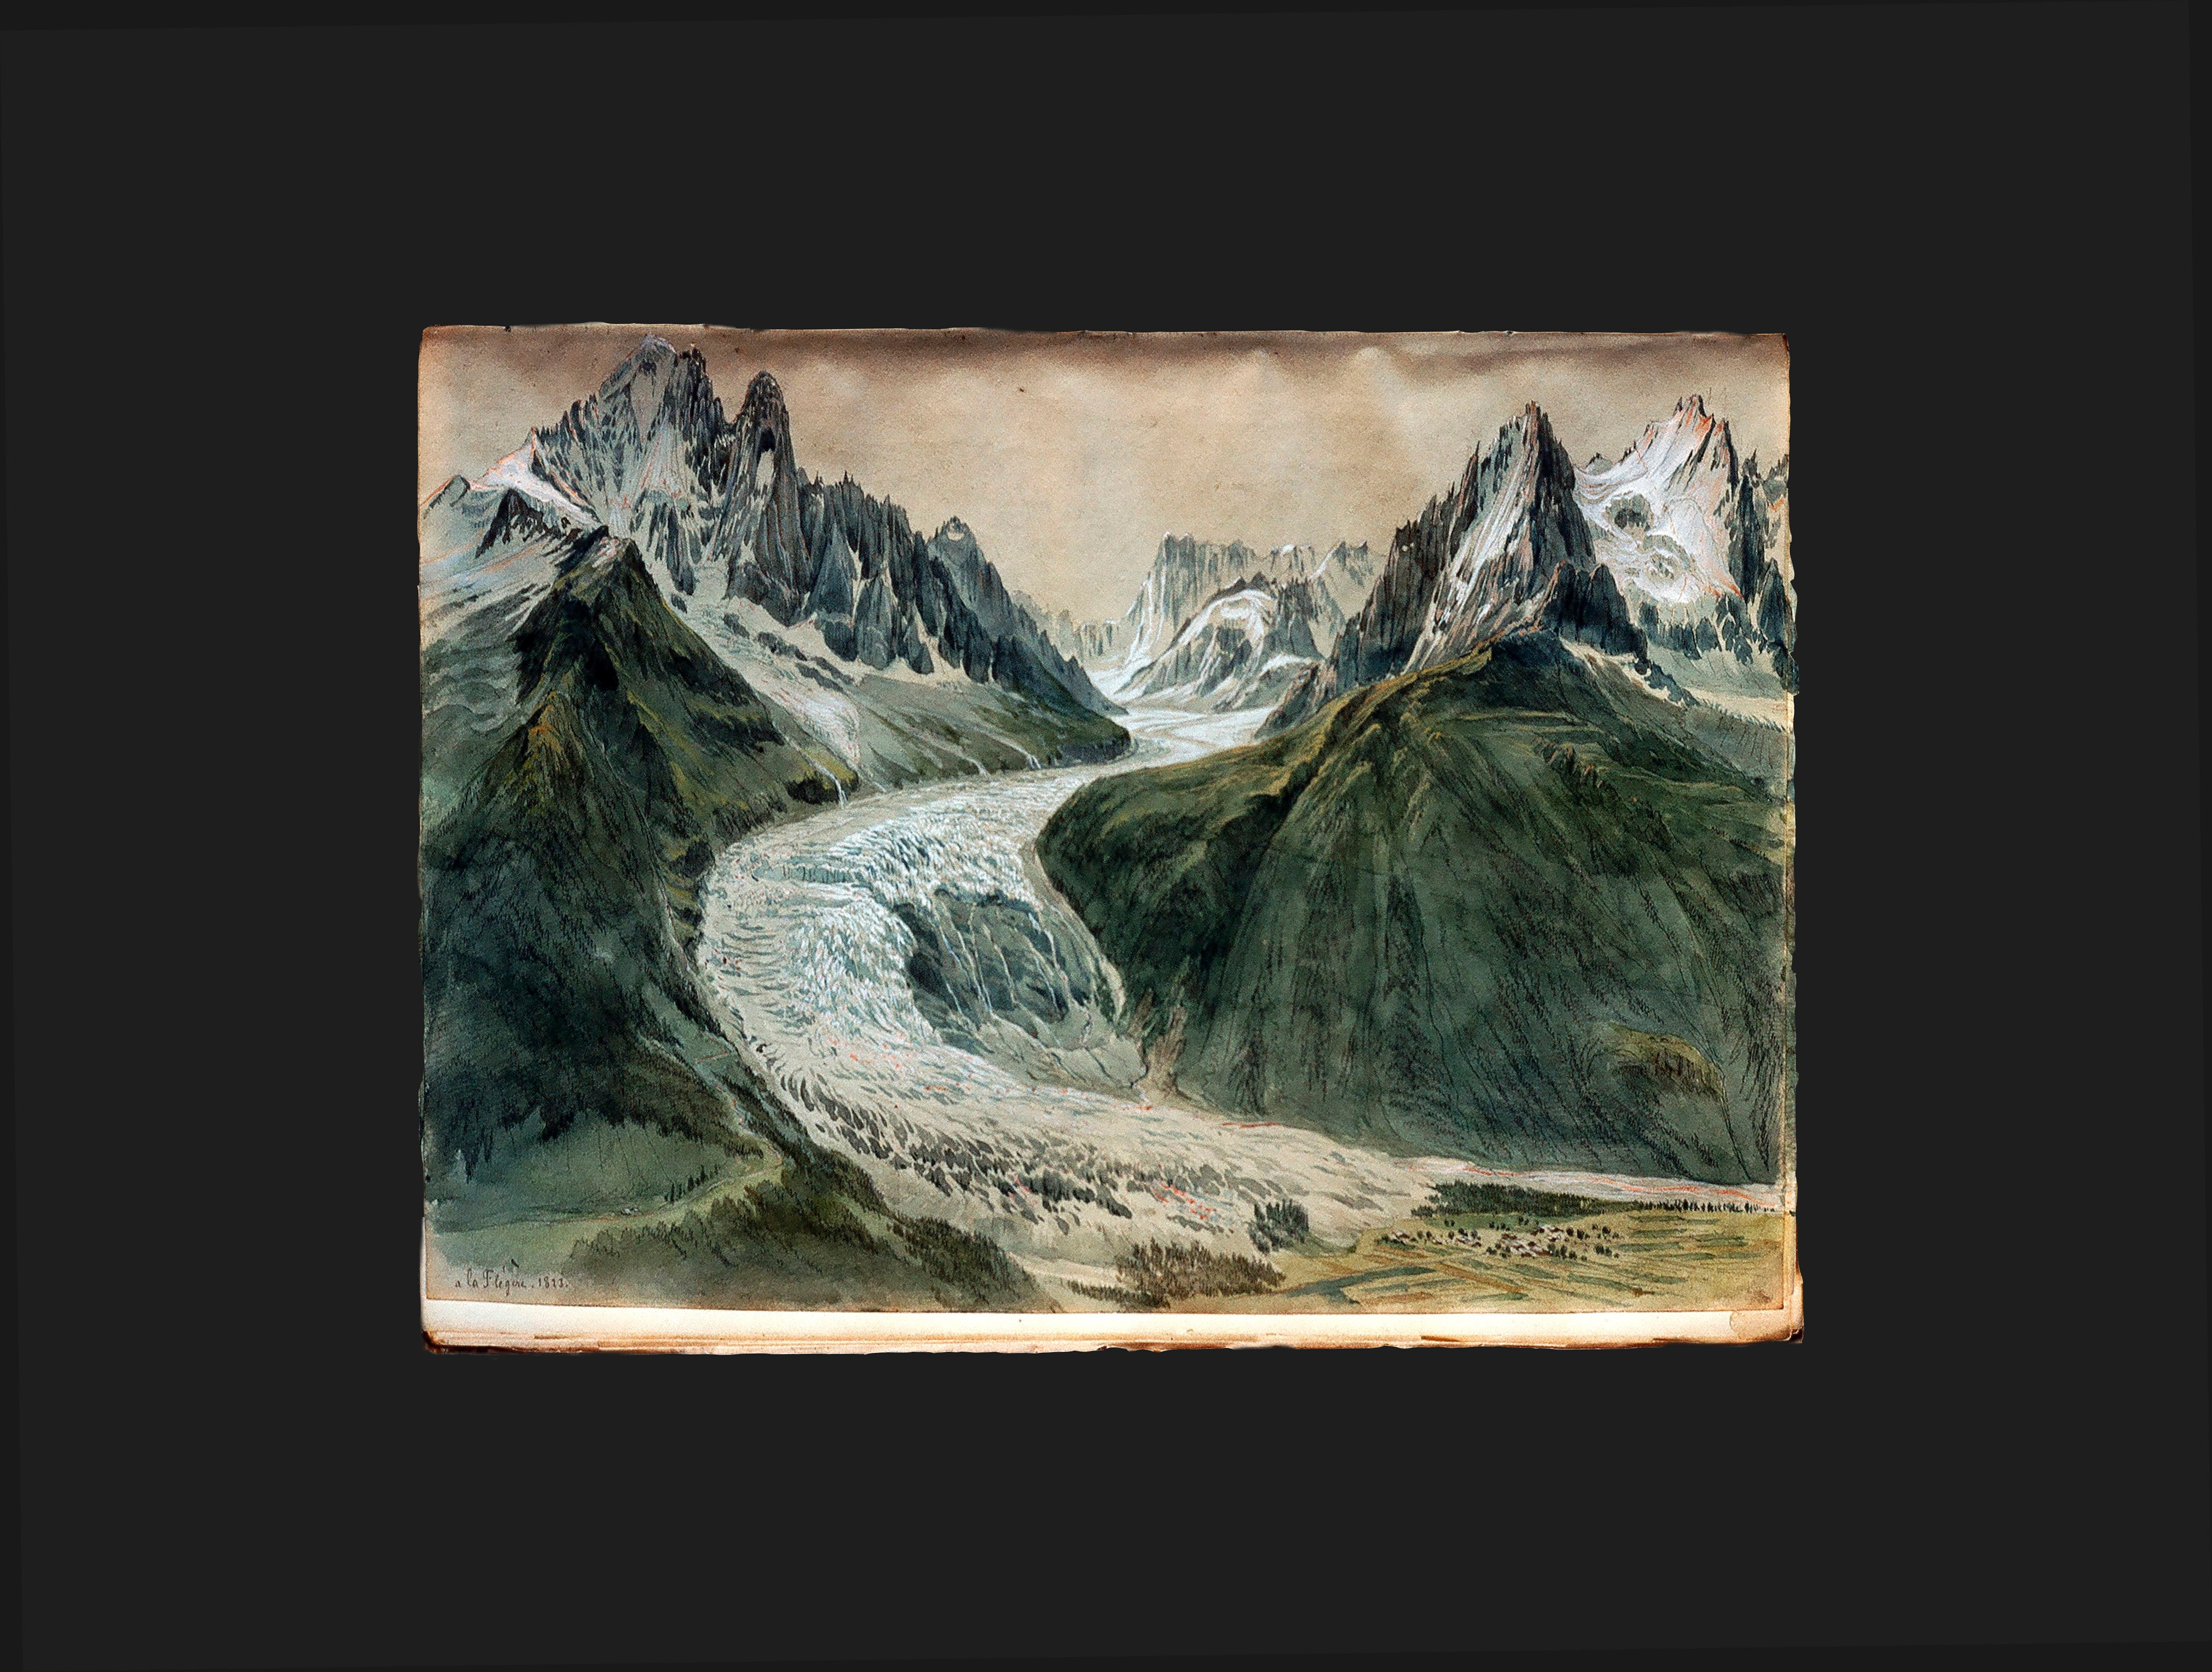 The Mer de Glace portrayed by Samuel Birmann in 1823 from La Flégère. (Kupferstichkabinett, Kunstmuseum Basel)